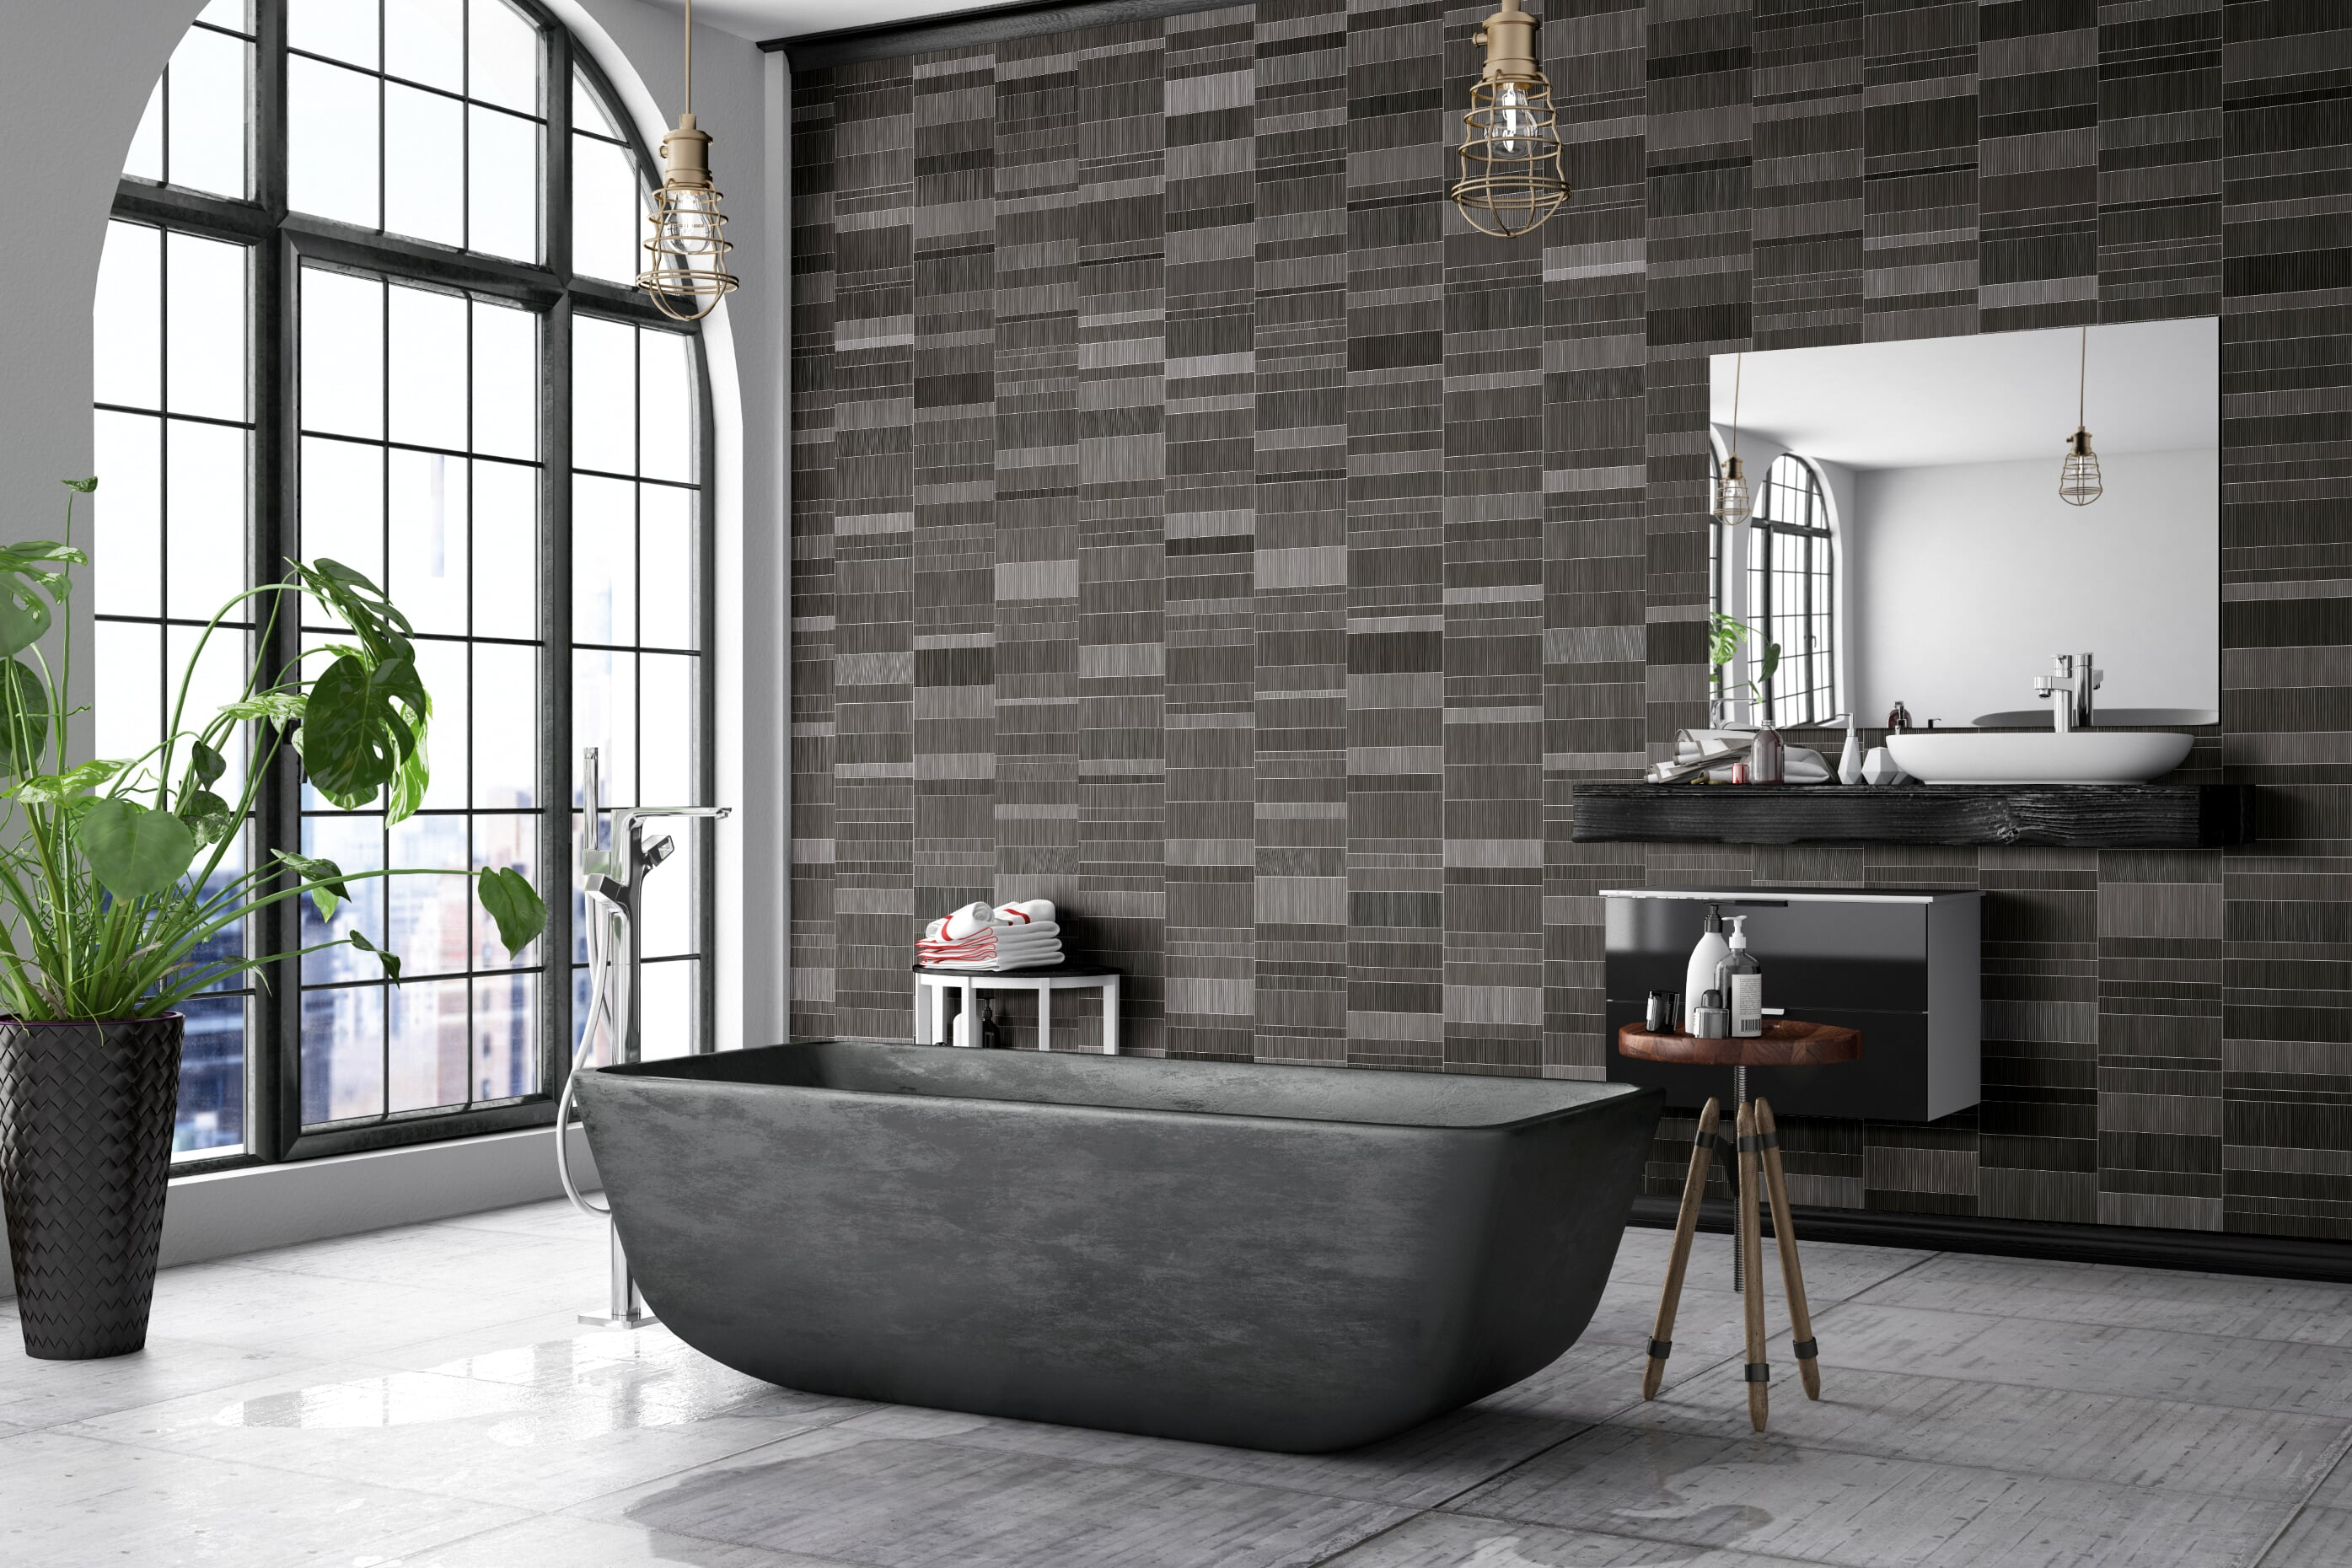 Tile effect bathroom wall tiles. Water proof wall covering.